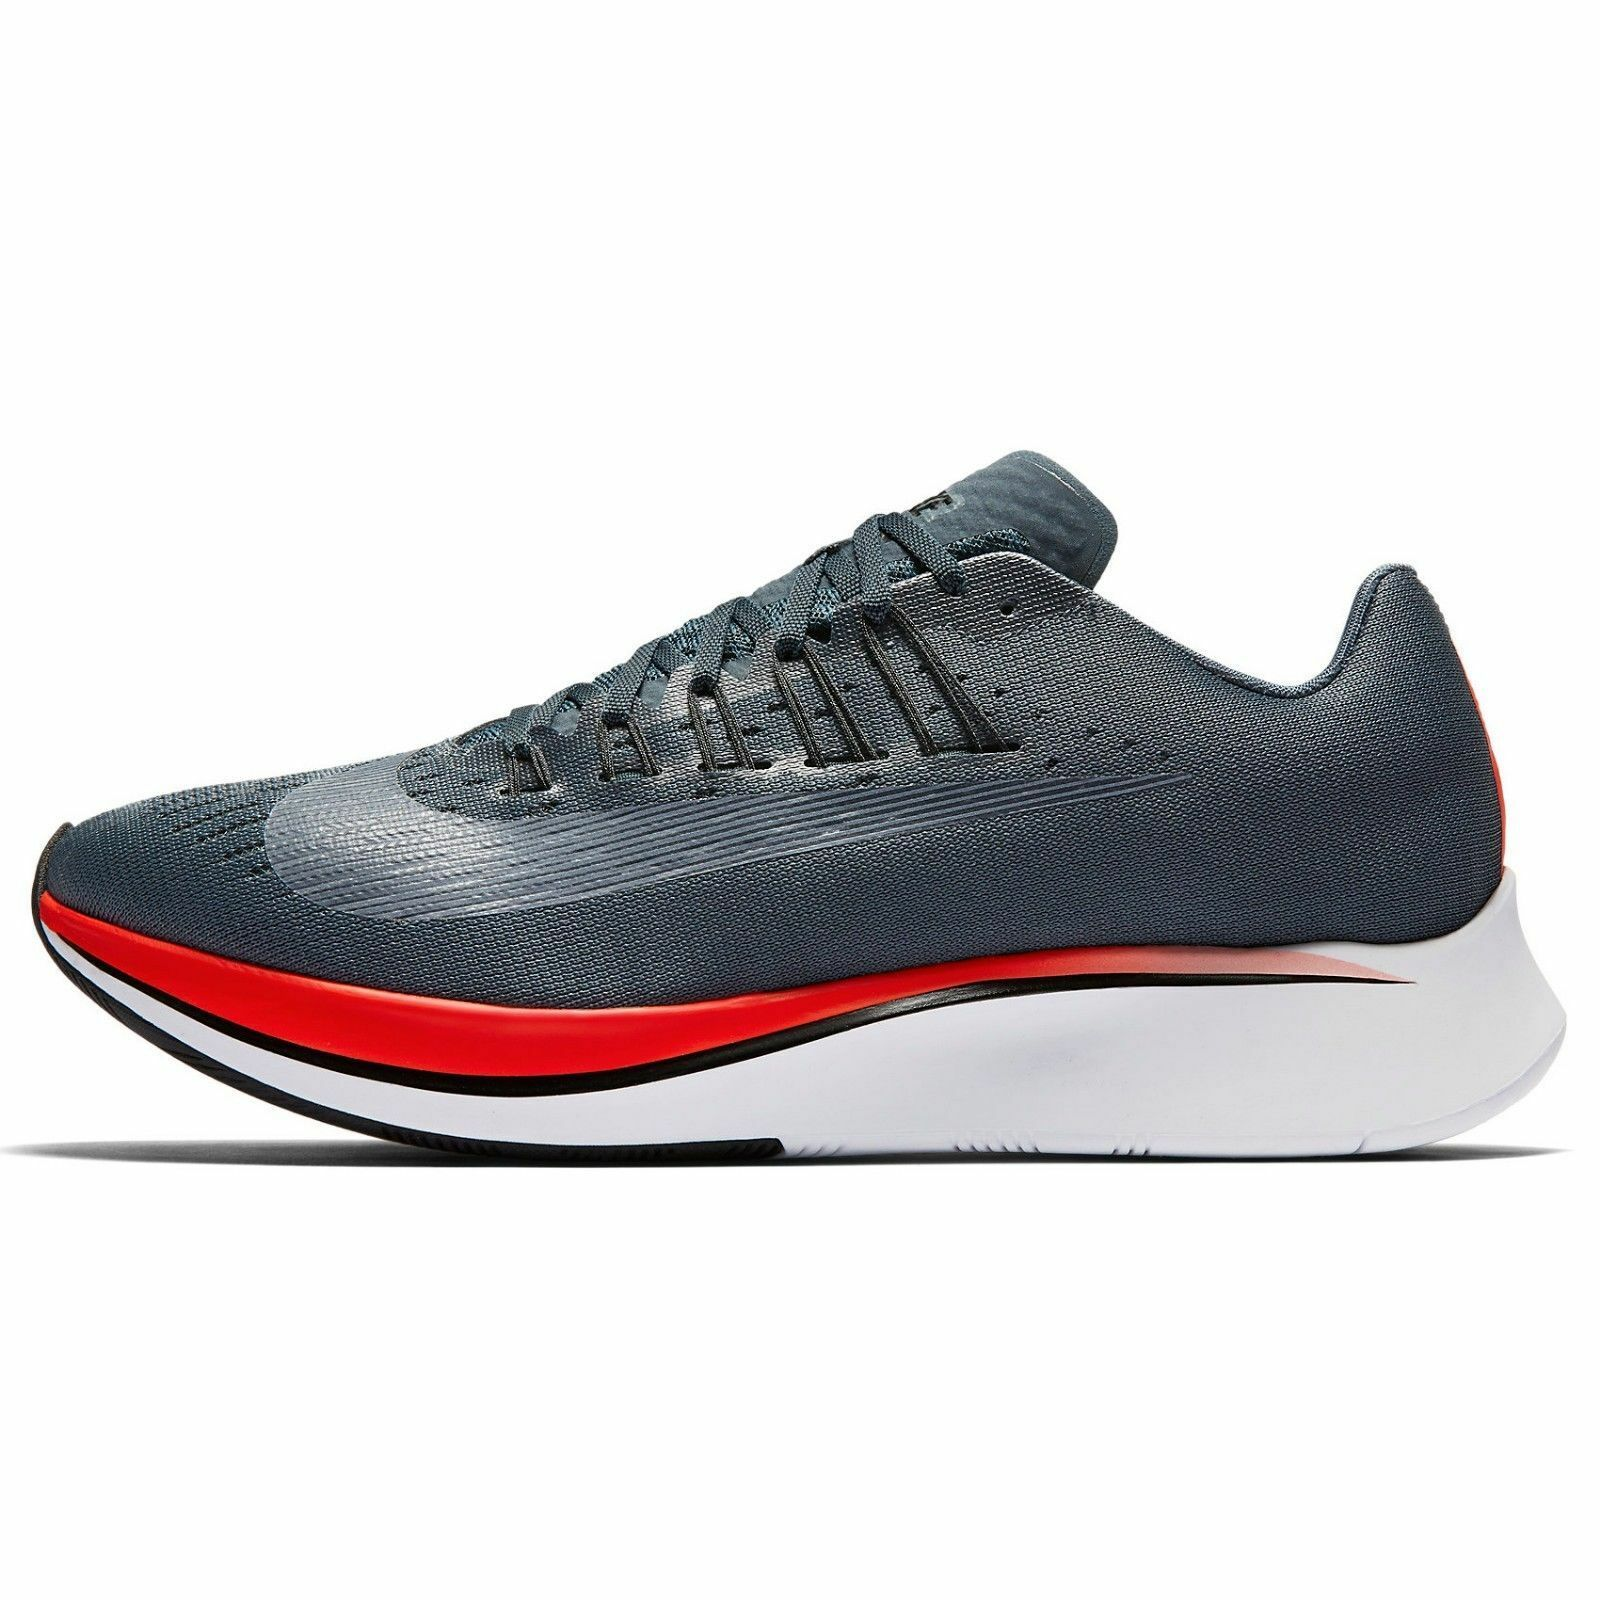 Nike Zoom Fly OG Authentic shoes New Men's Running Trainers 880848 400 No Lid